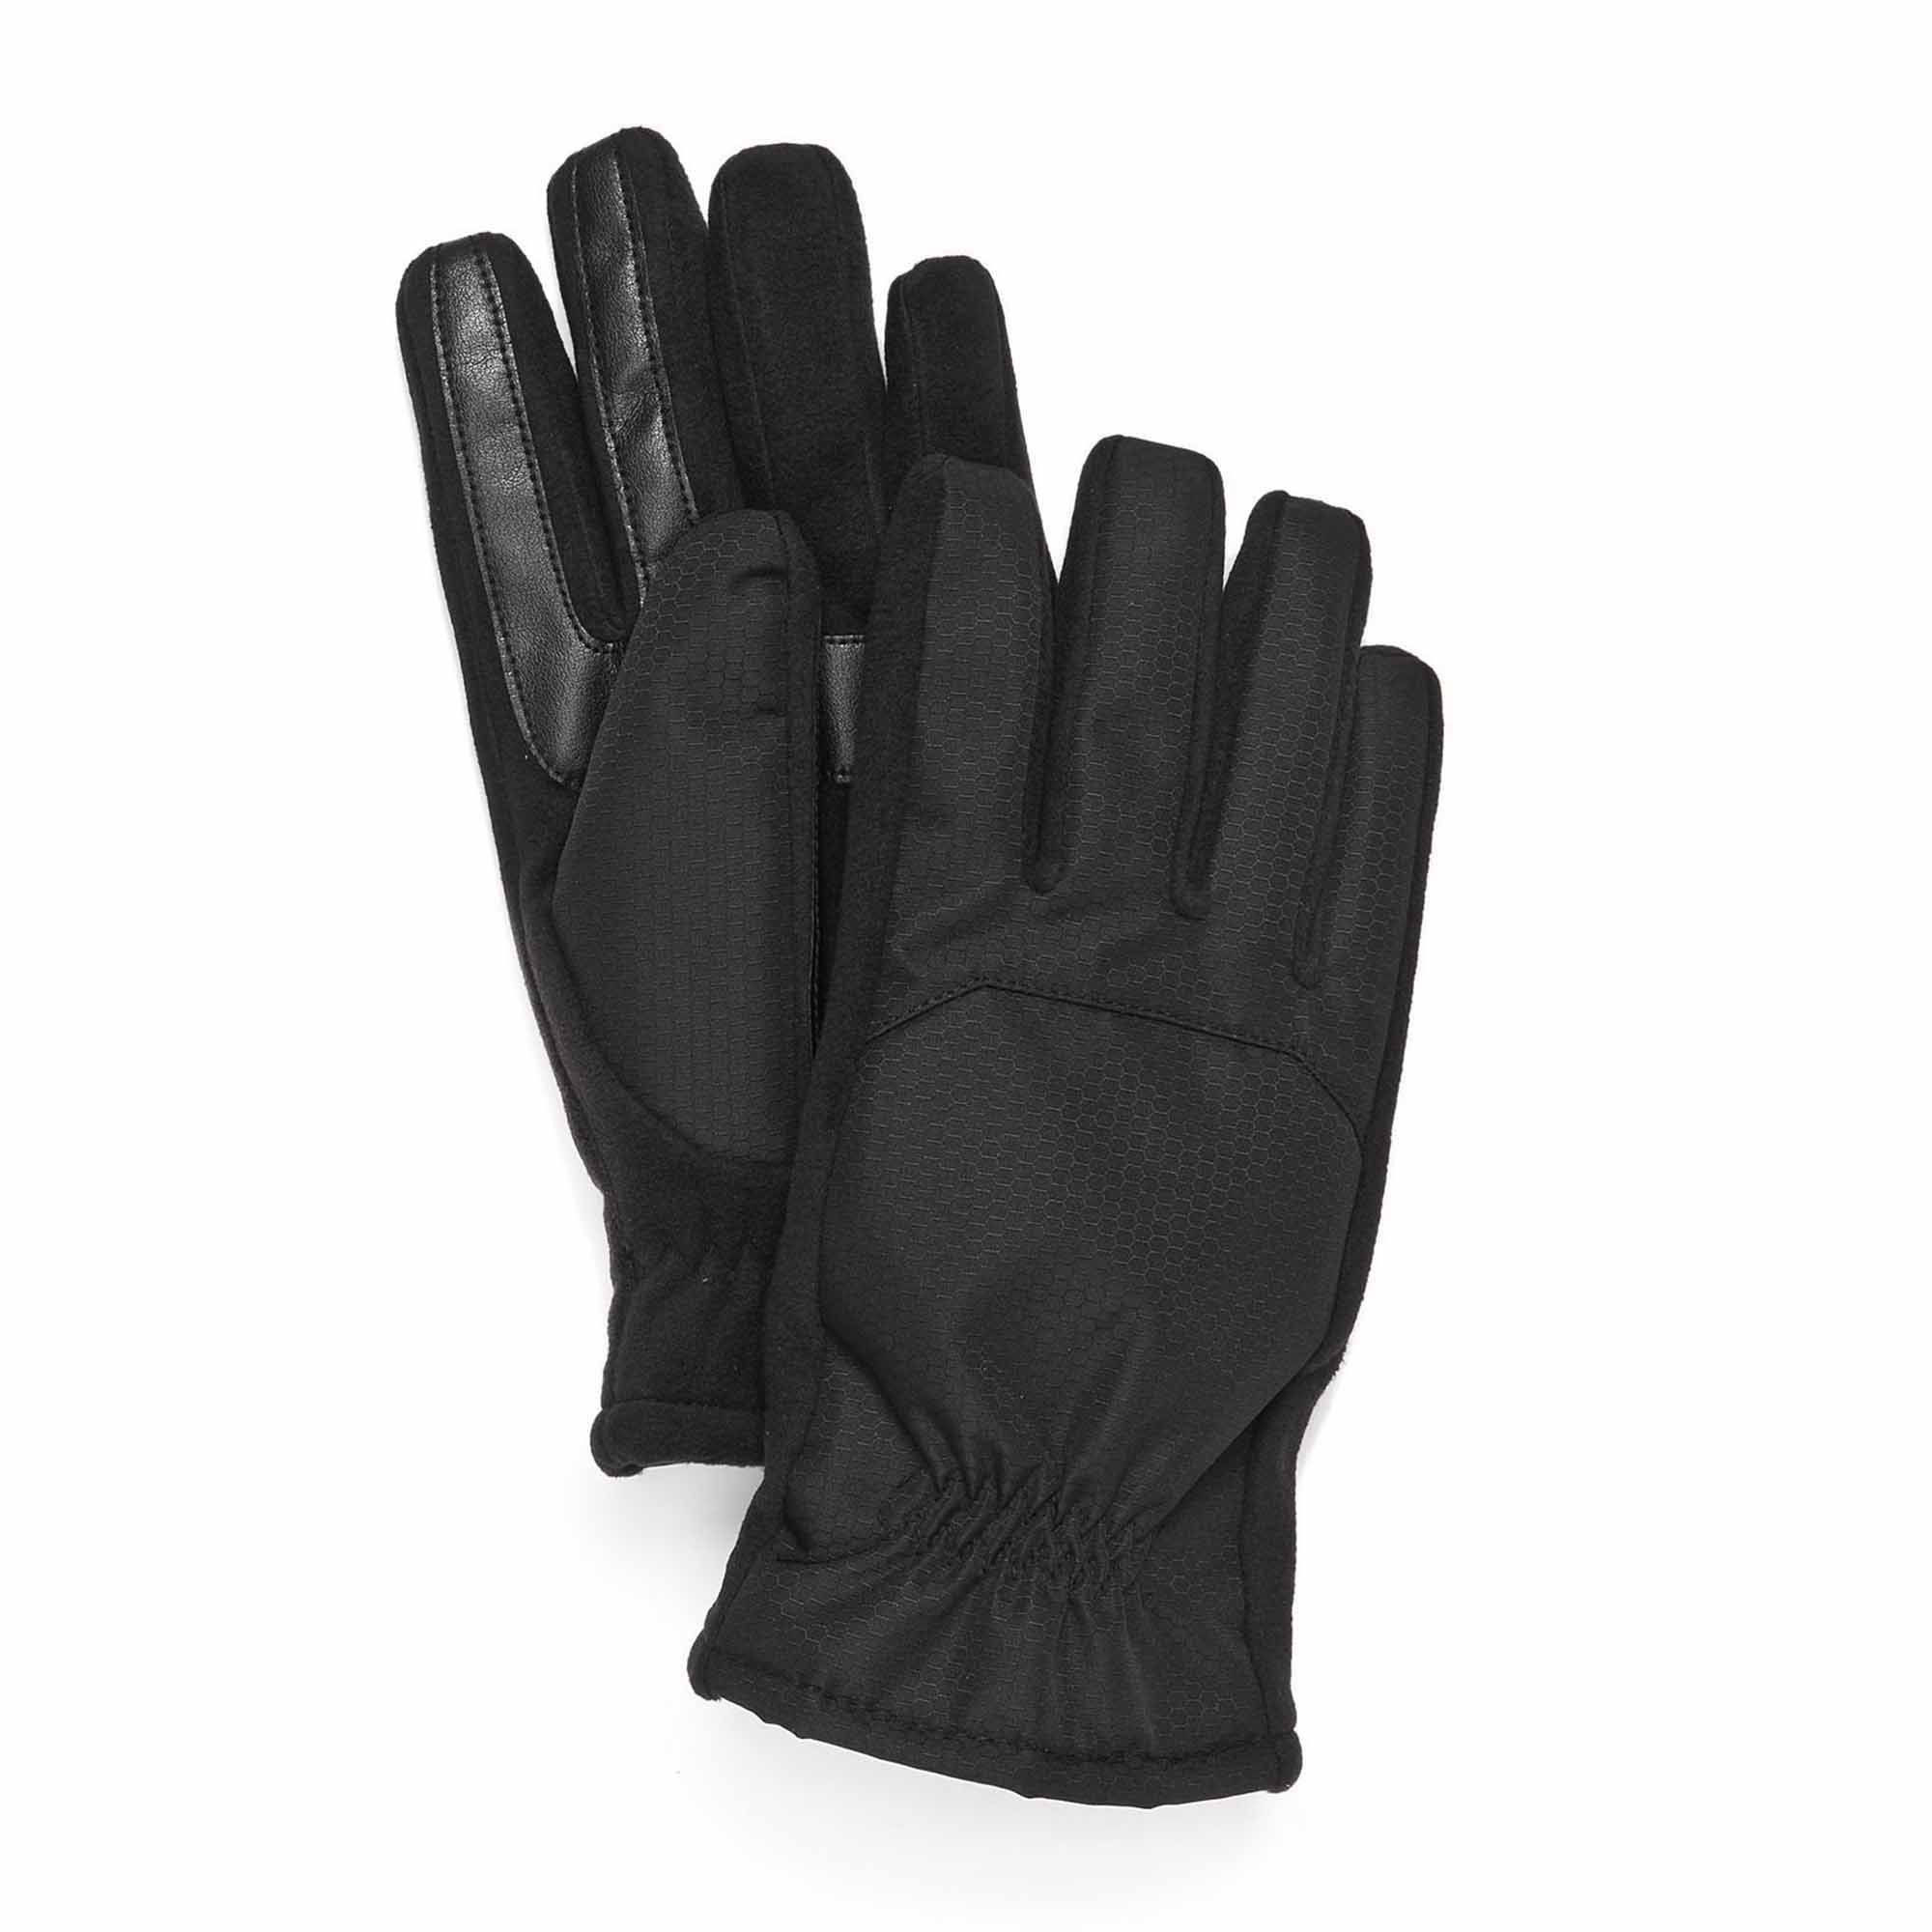 Mens gloves isotoner - Isotoner Signature Men S Matrix Smartouch Gloves Thermaflex Lined Black